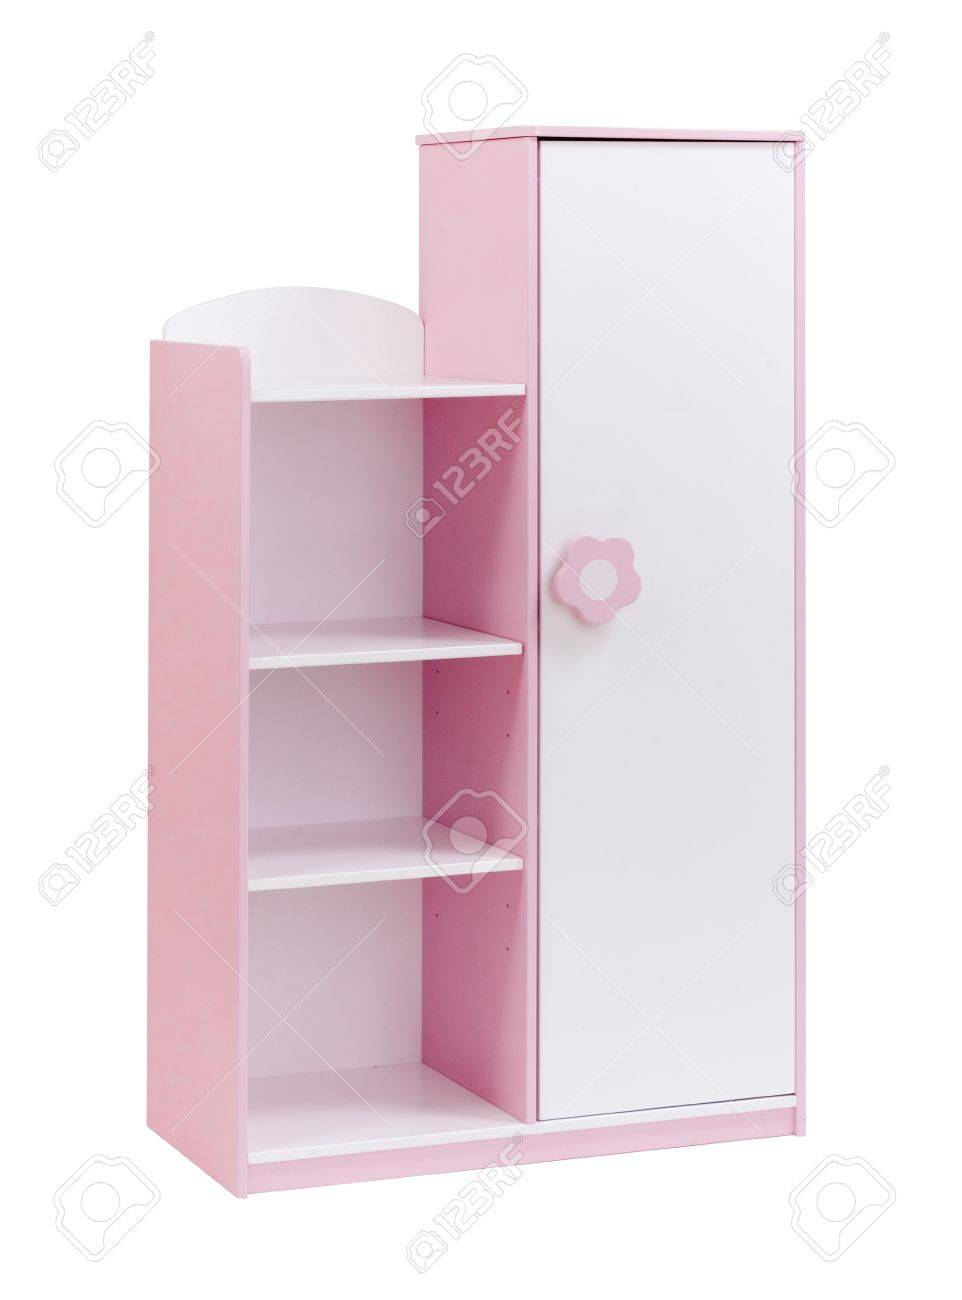 Kinder Schrank Stock Photo